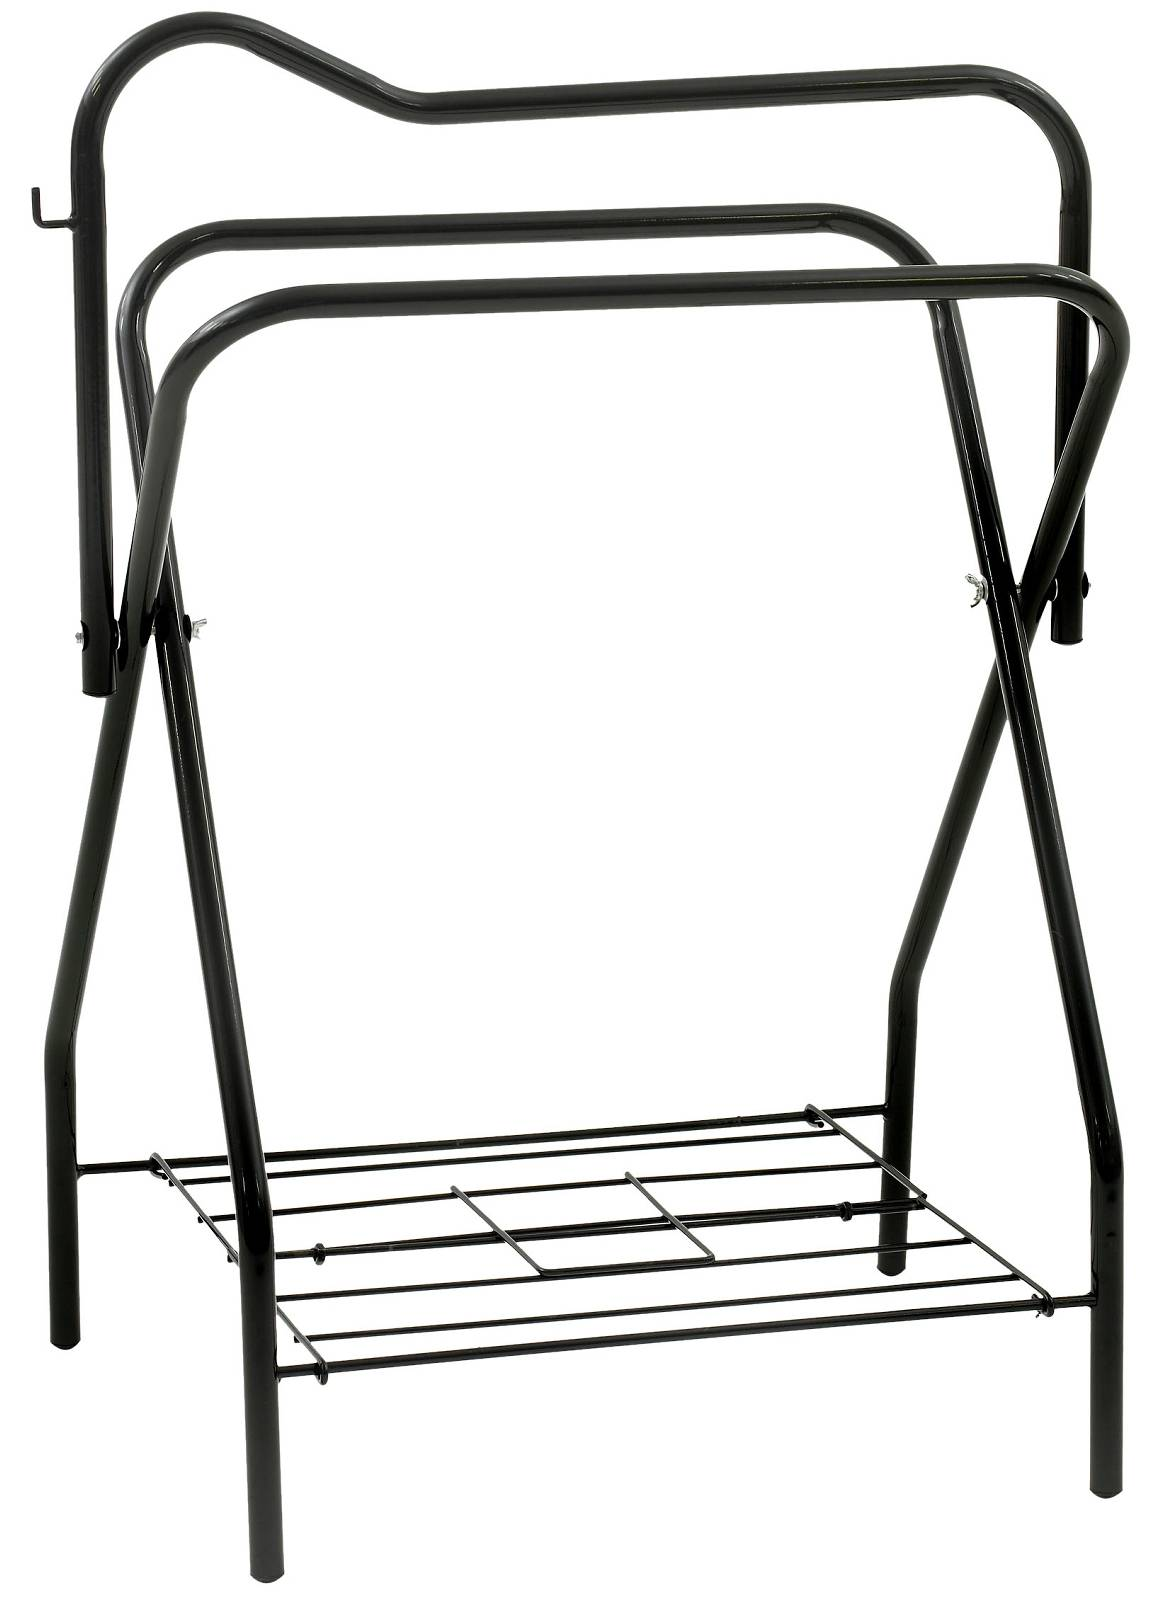 Equiessentials Portable Saddle Rack